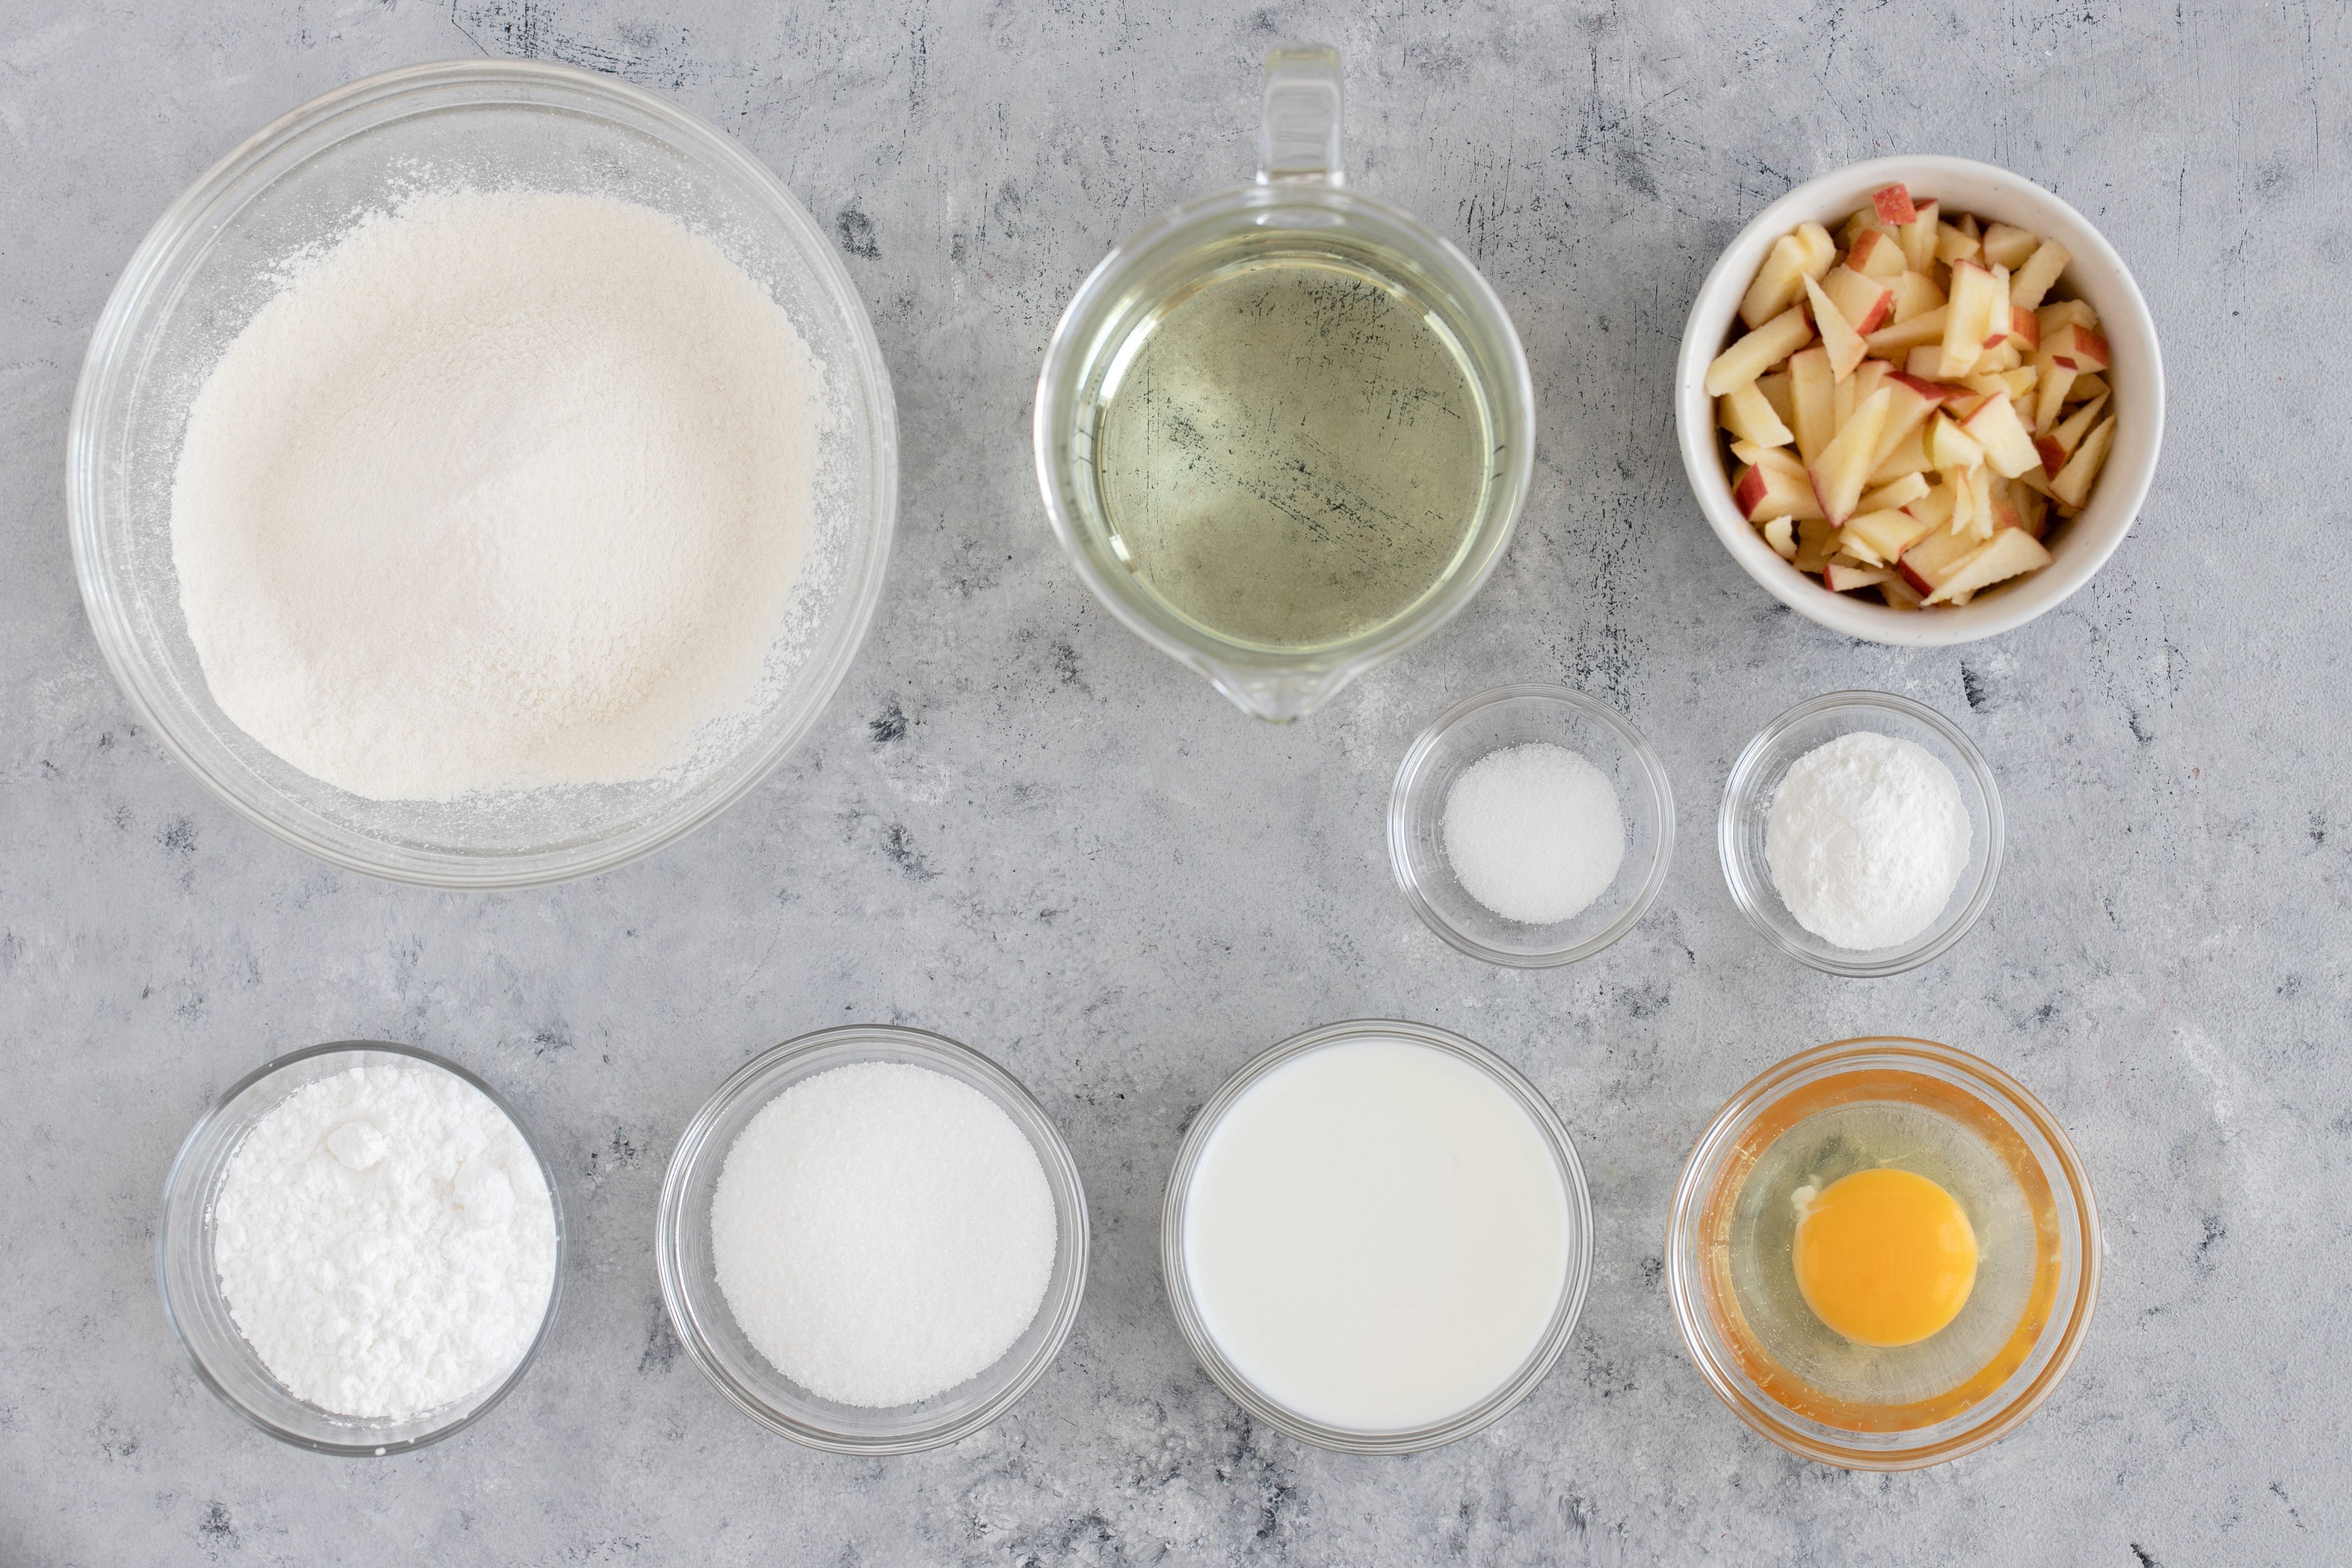 Ingredients for deep fried apple fritters